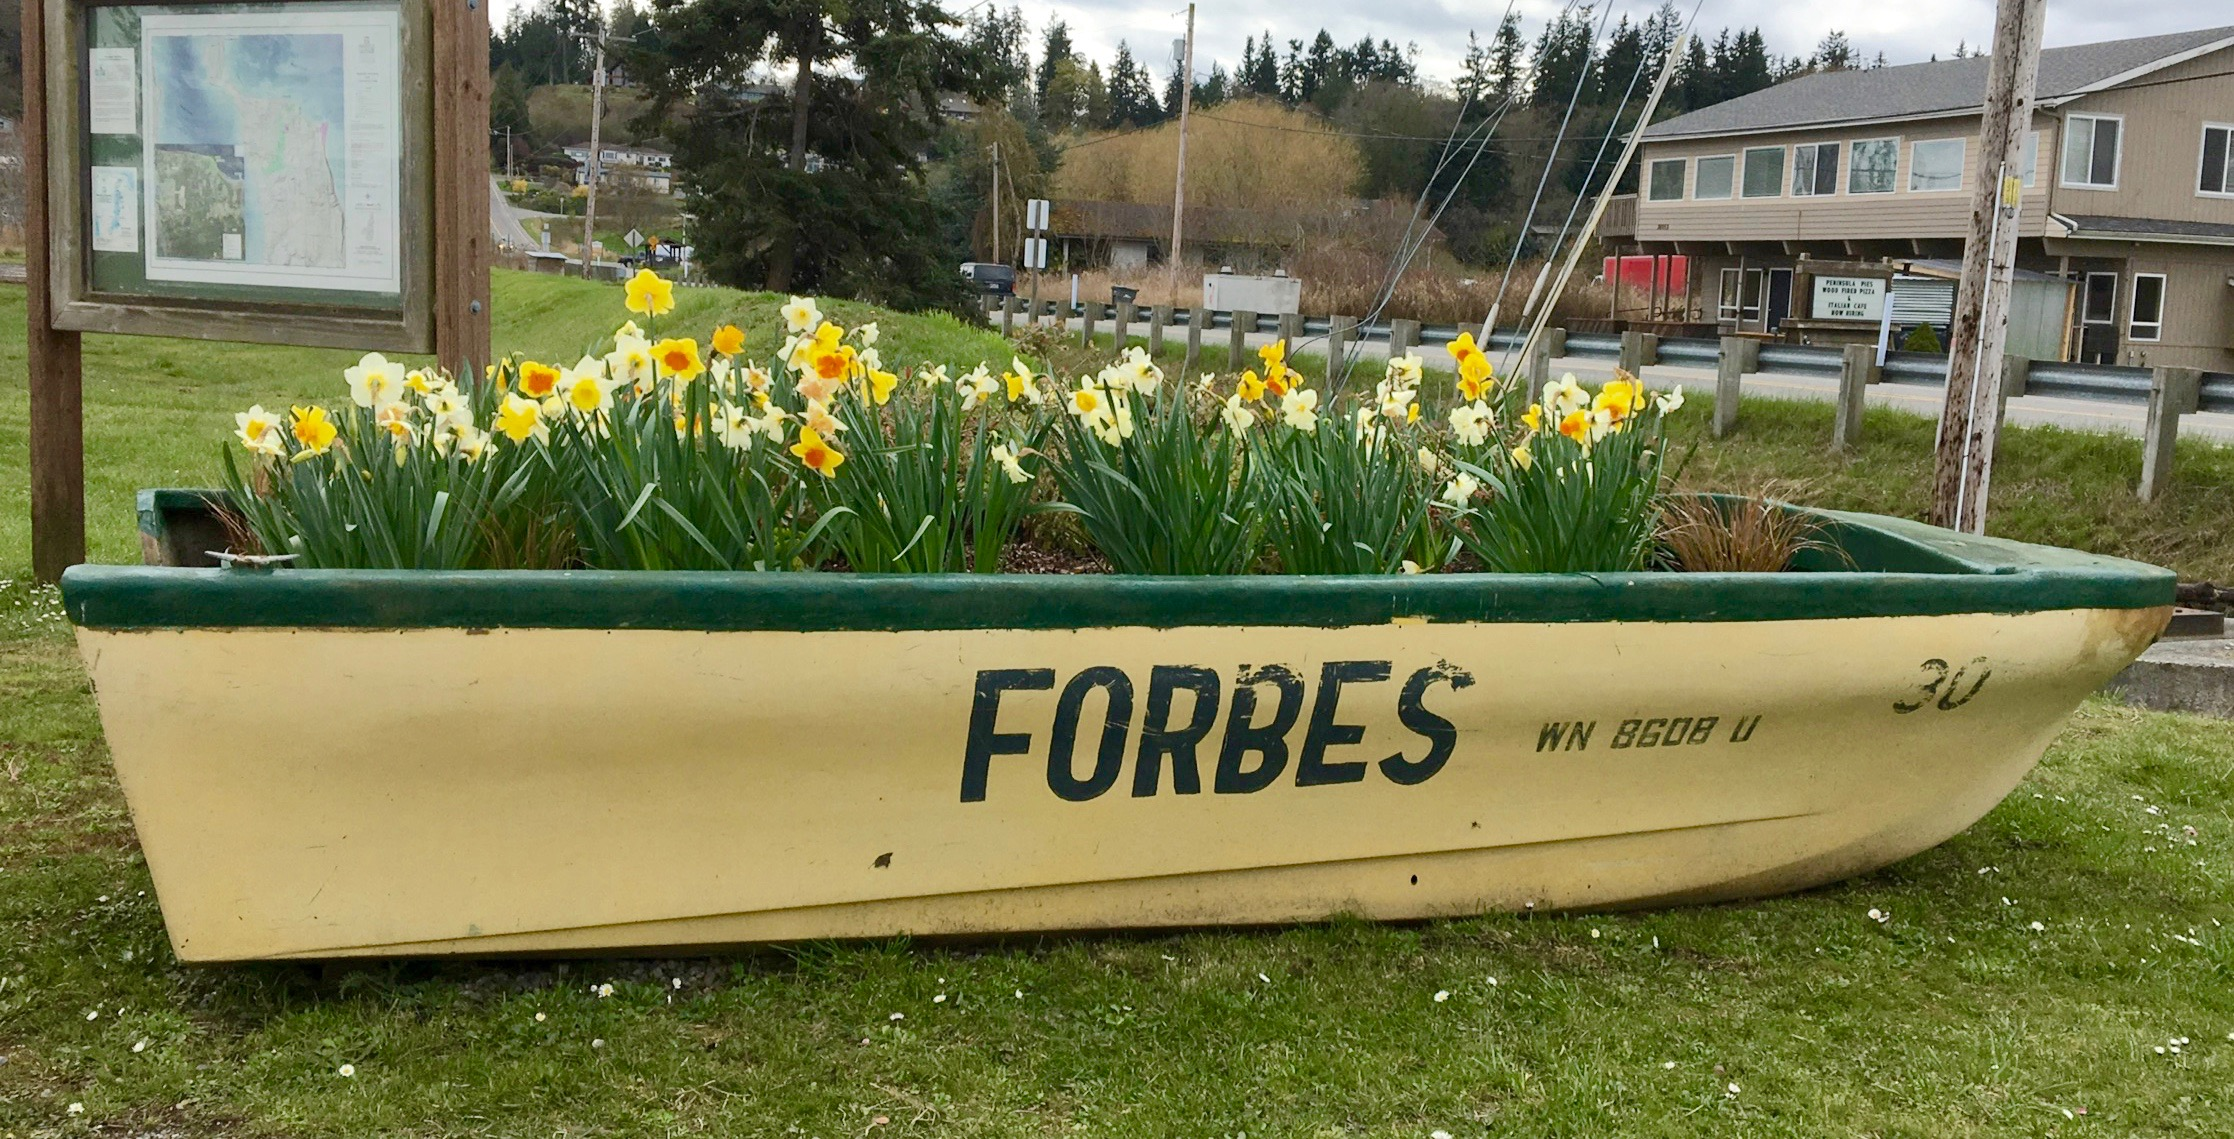 Forbes Boat